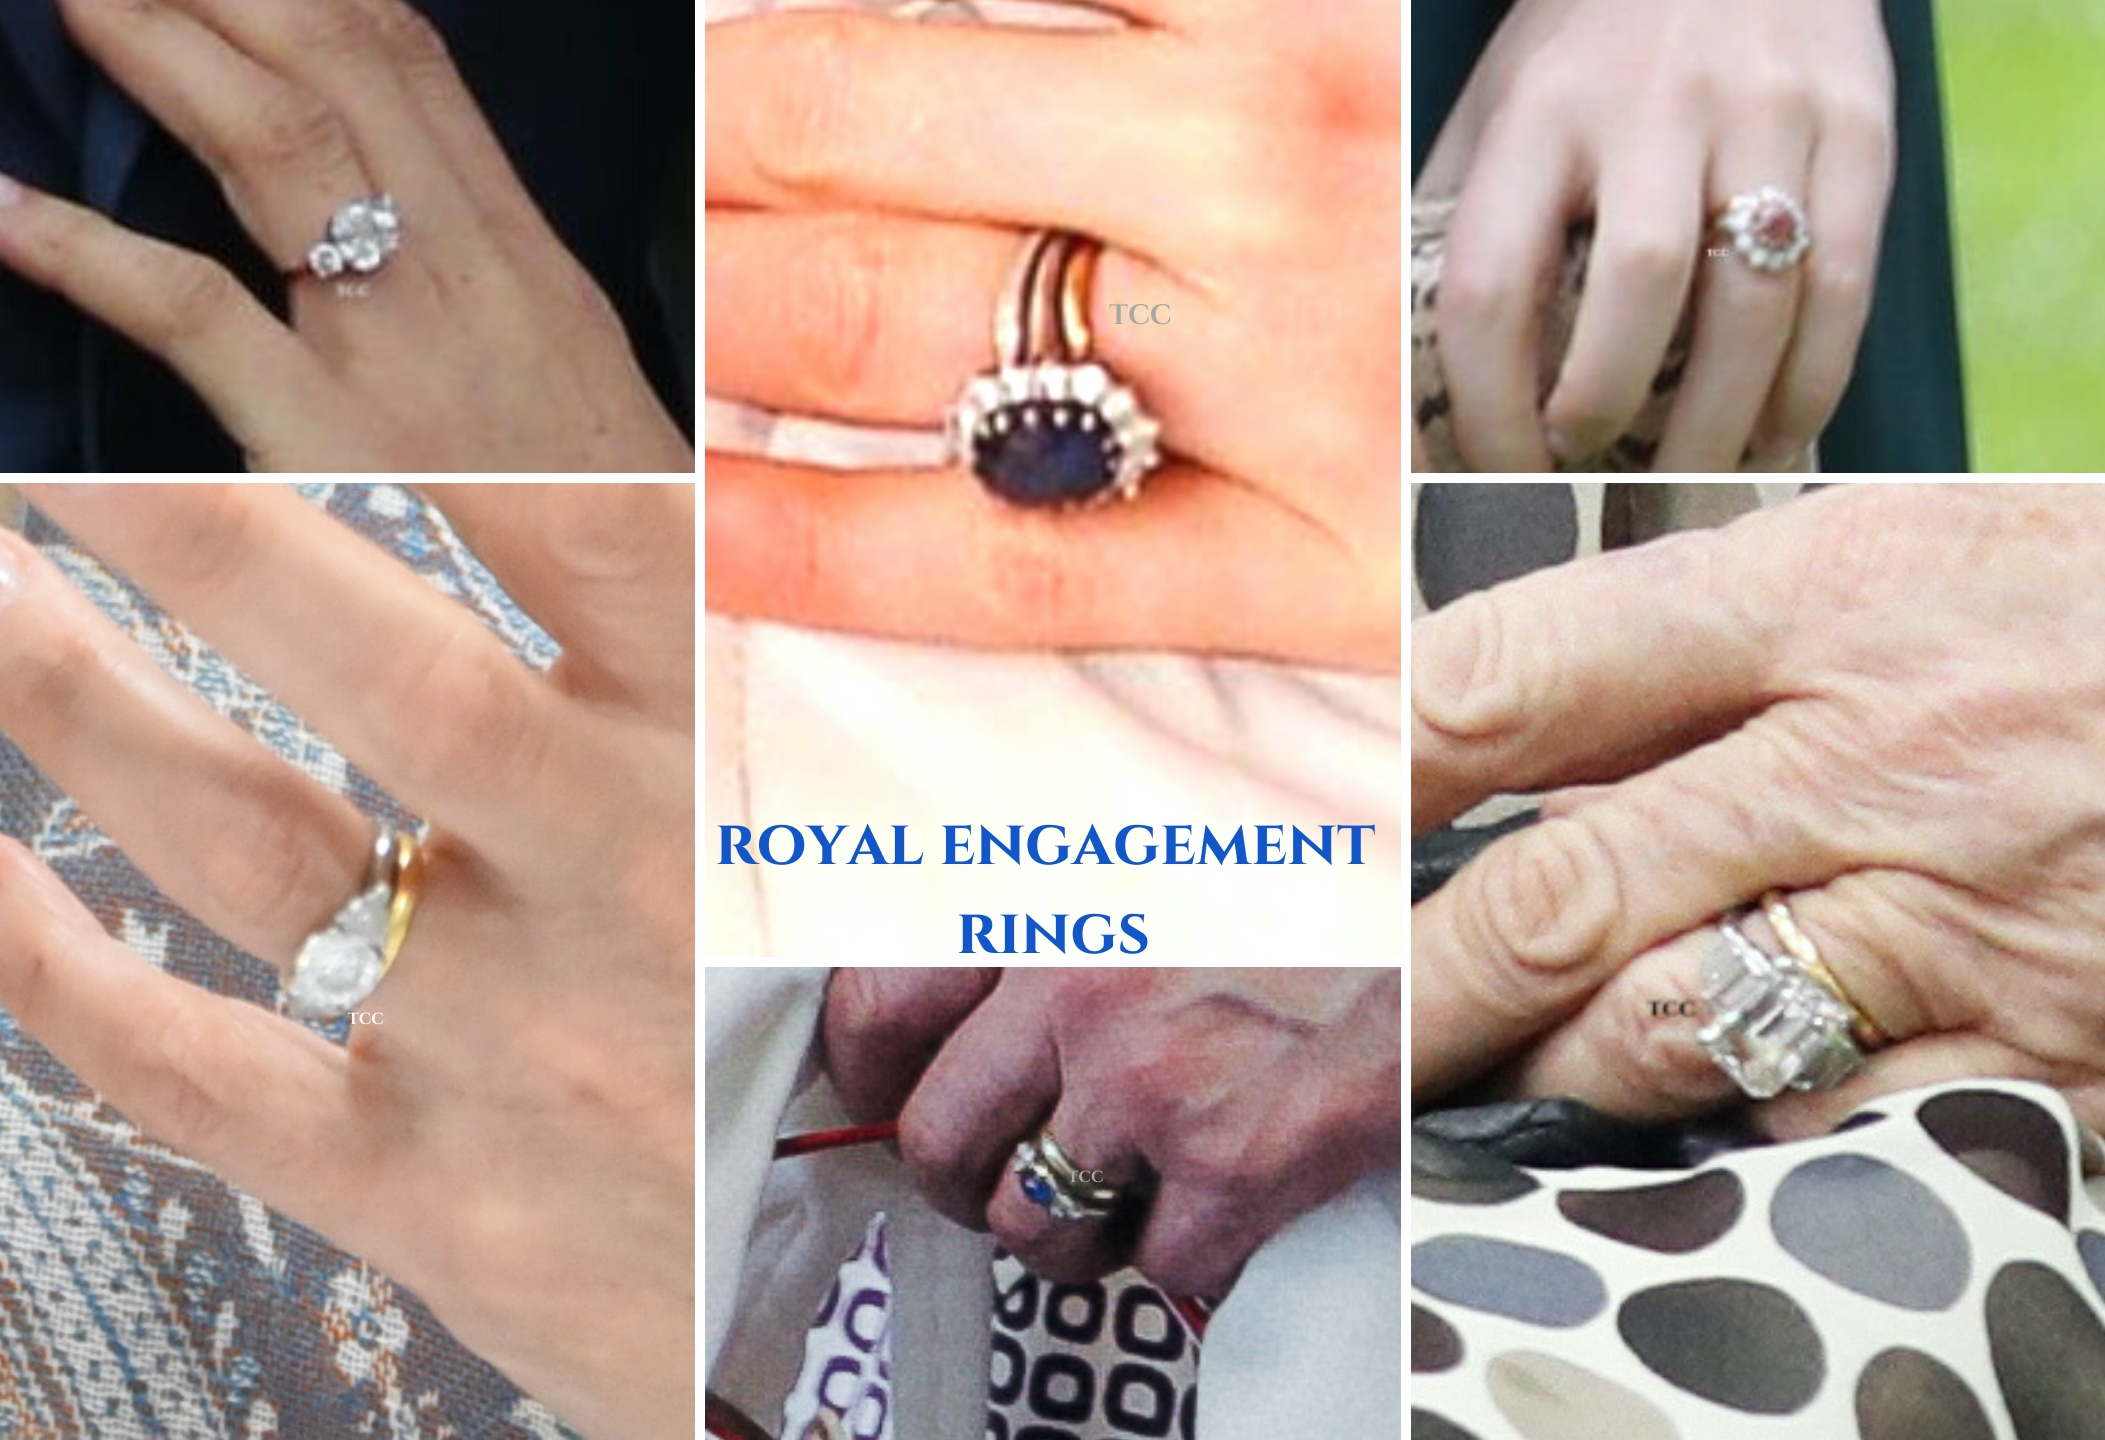 Royal Engagement Rings From Queen Mother To Princess Beatrice